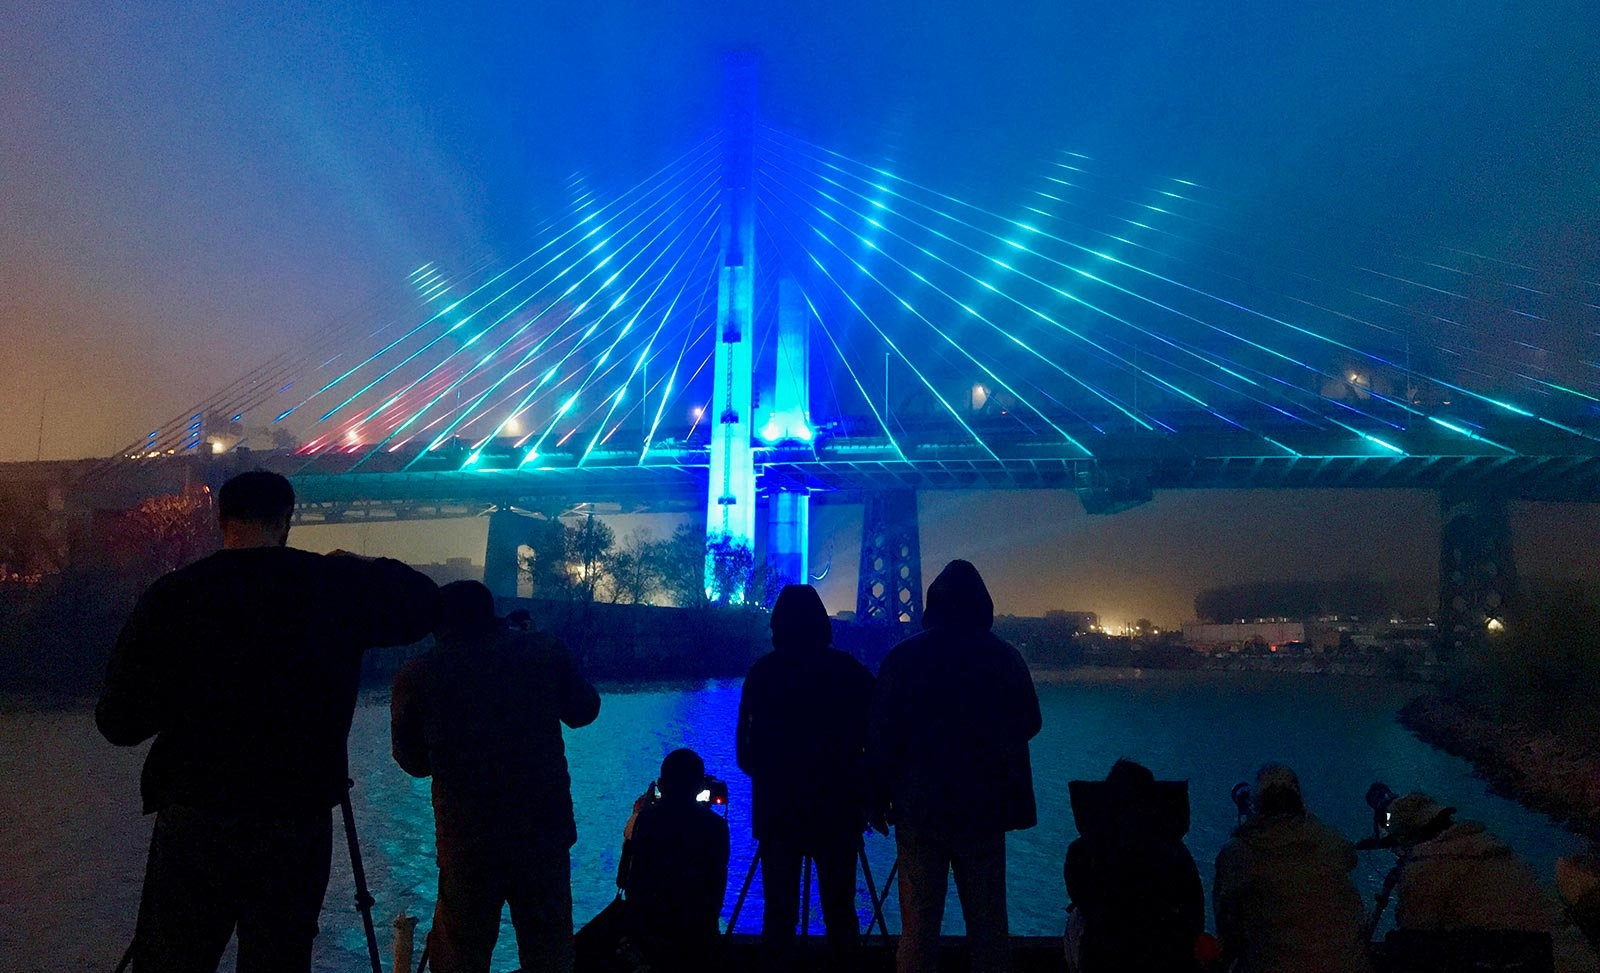 The new span of the Kosciuszko Bridge makes debut with a spectacular light show Thursday night's in New York with LED lights installed on the span that can change color and synchronize to music.